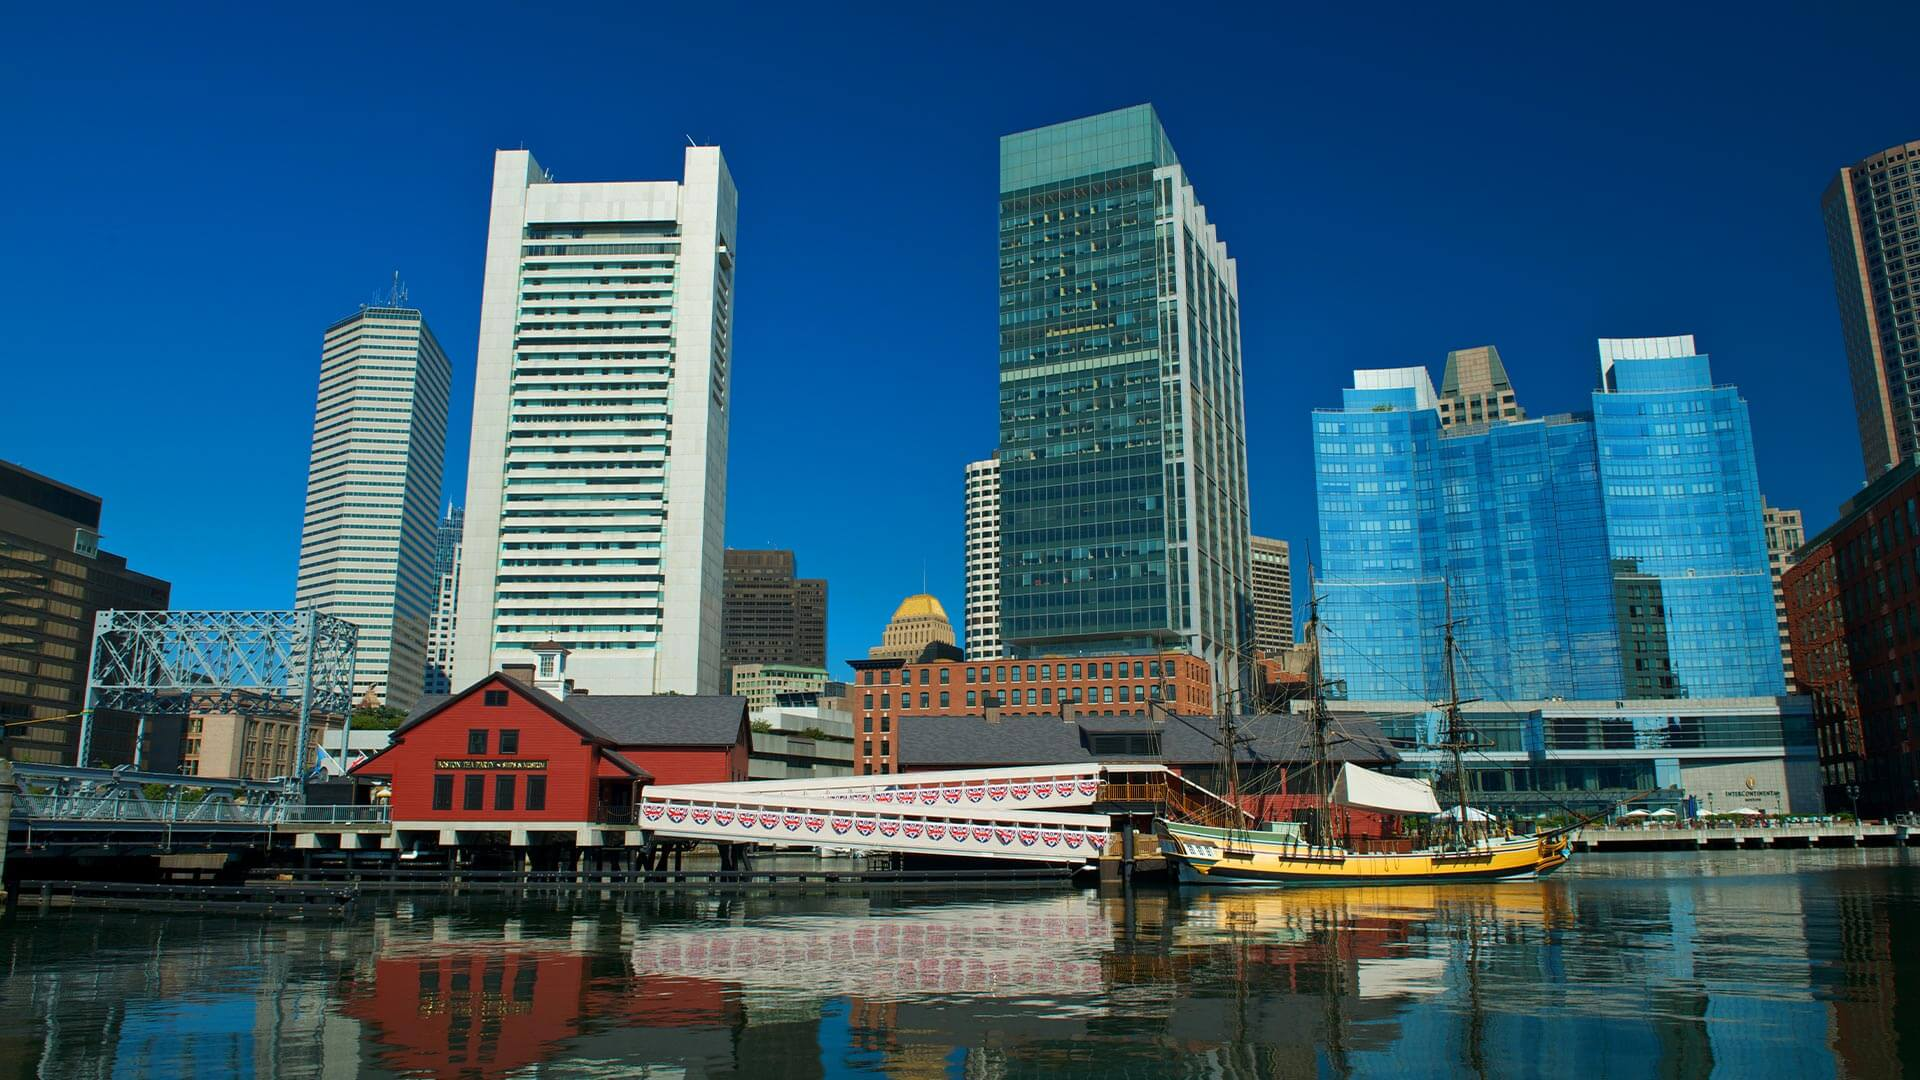 Boston Tea Party Ships Museum's view from the water